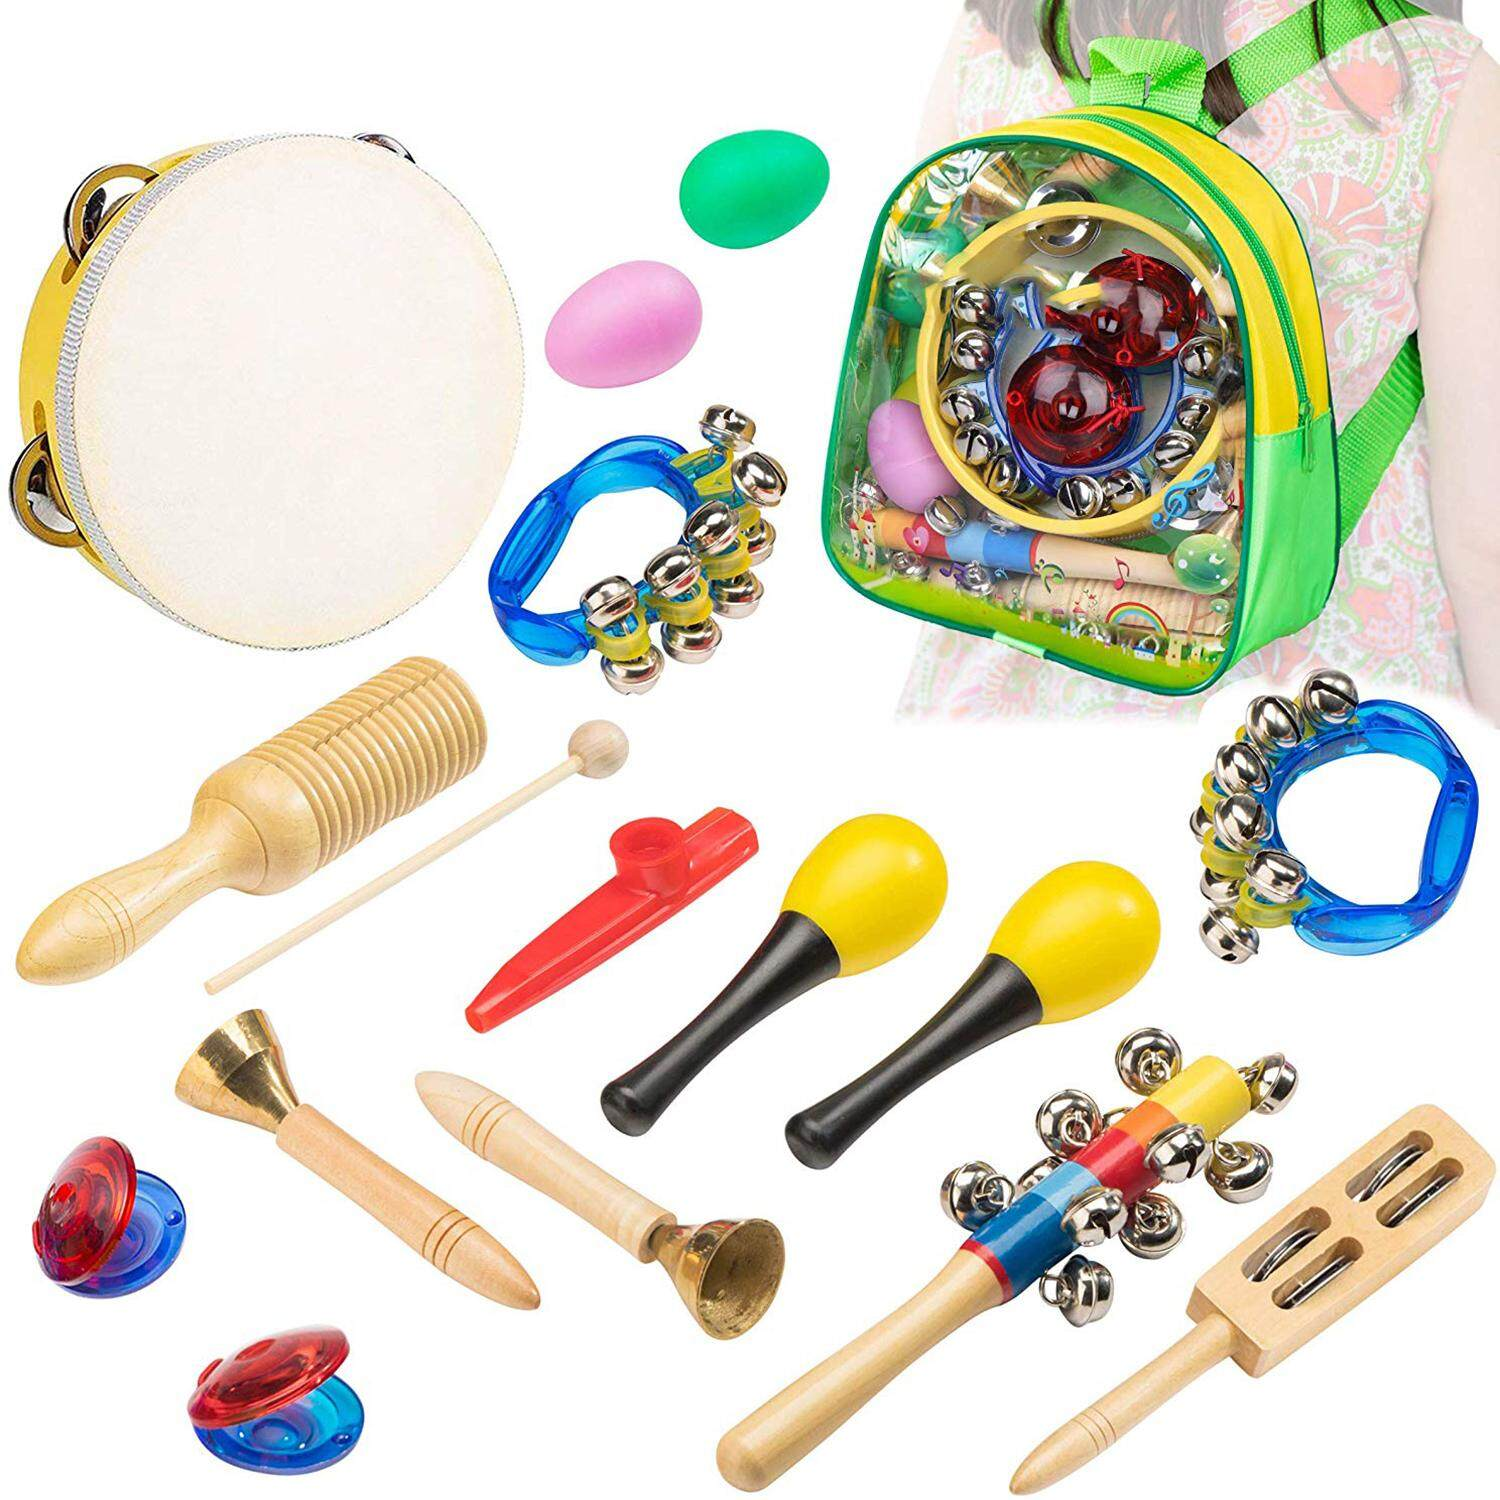 Musical Instrument Toys For Kids - 15 Pcs Percussion Set For Toddlers Preschool Educational Learning Musical Toys Including Tambourine Bells Shakers Kazoo With Storage Backpack By Ycitc.